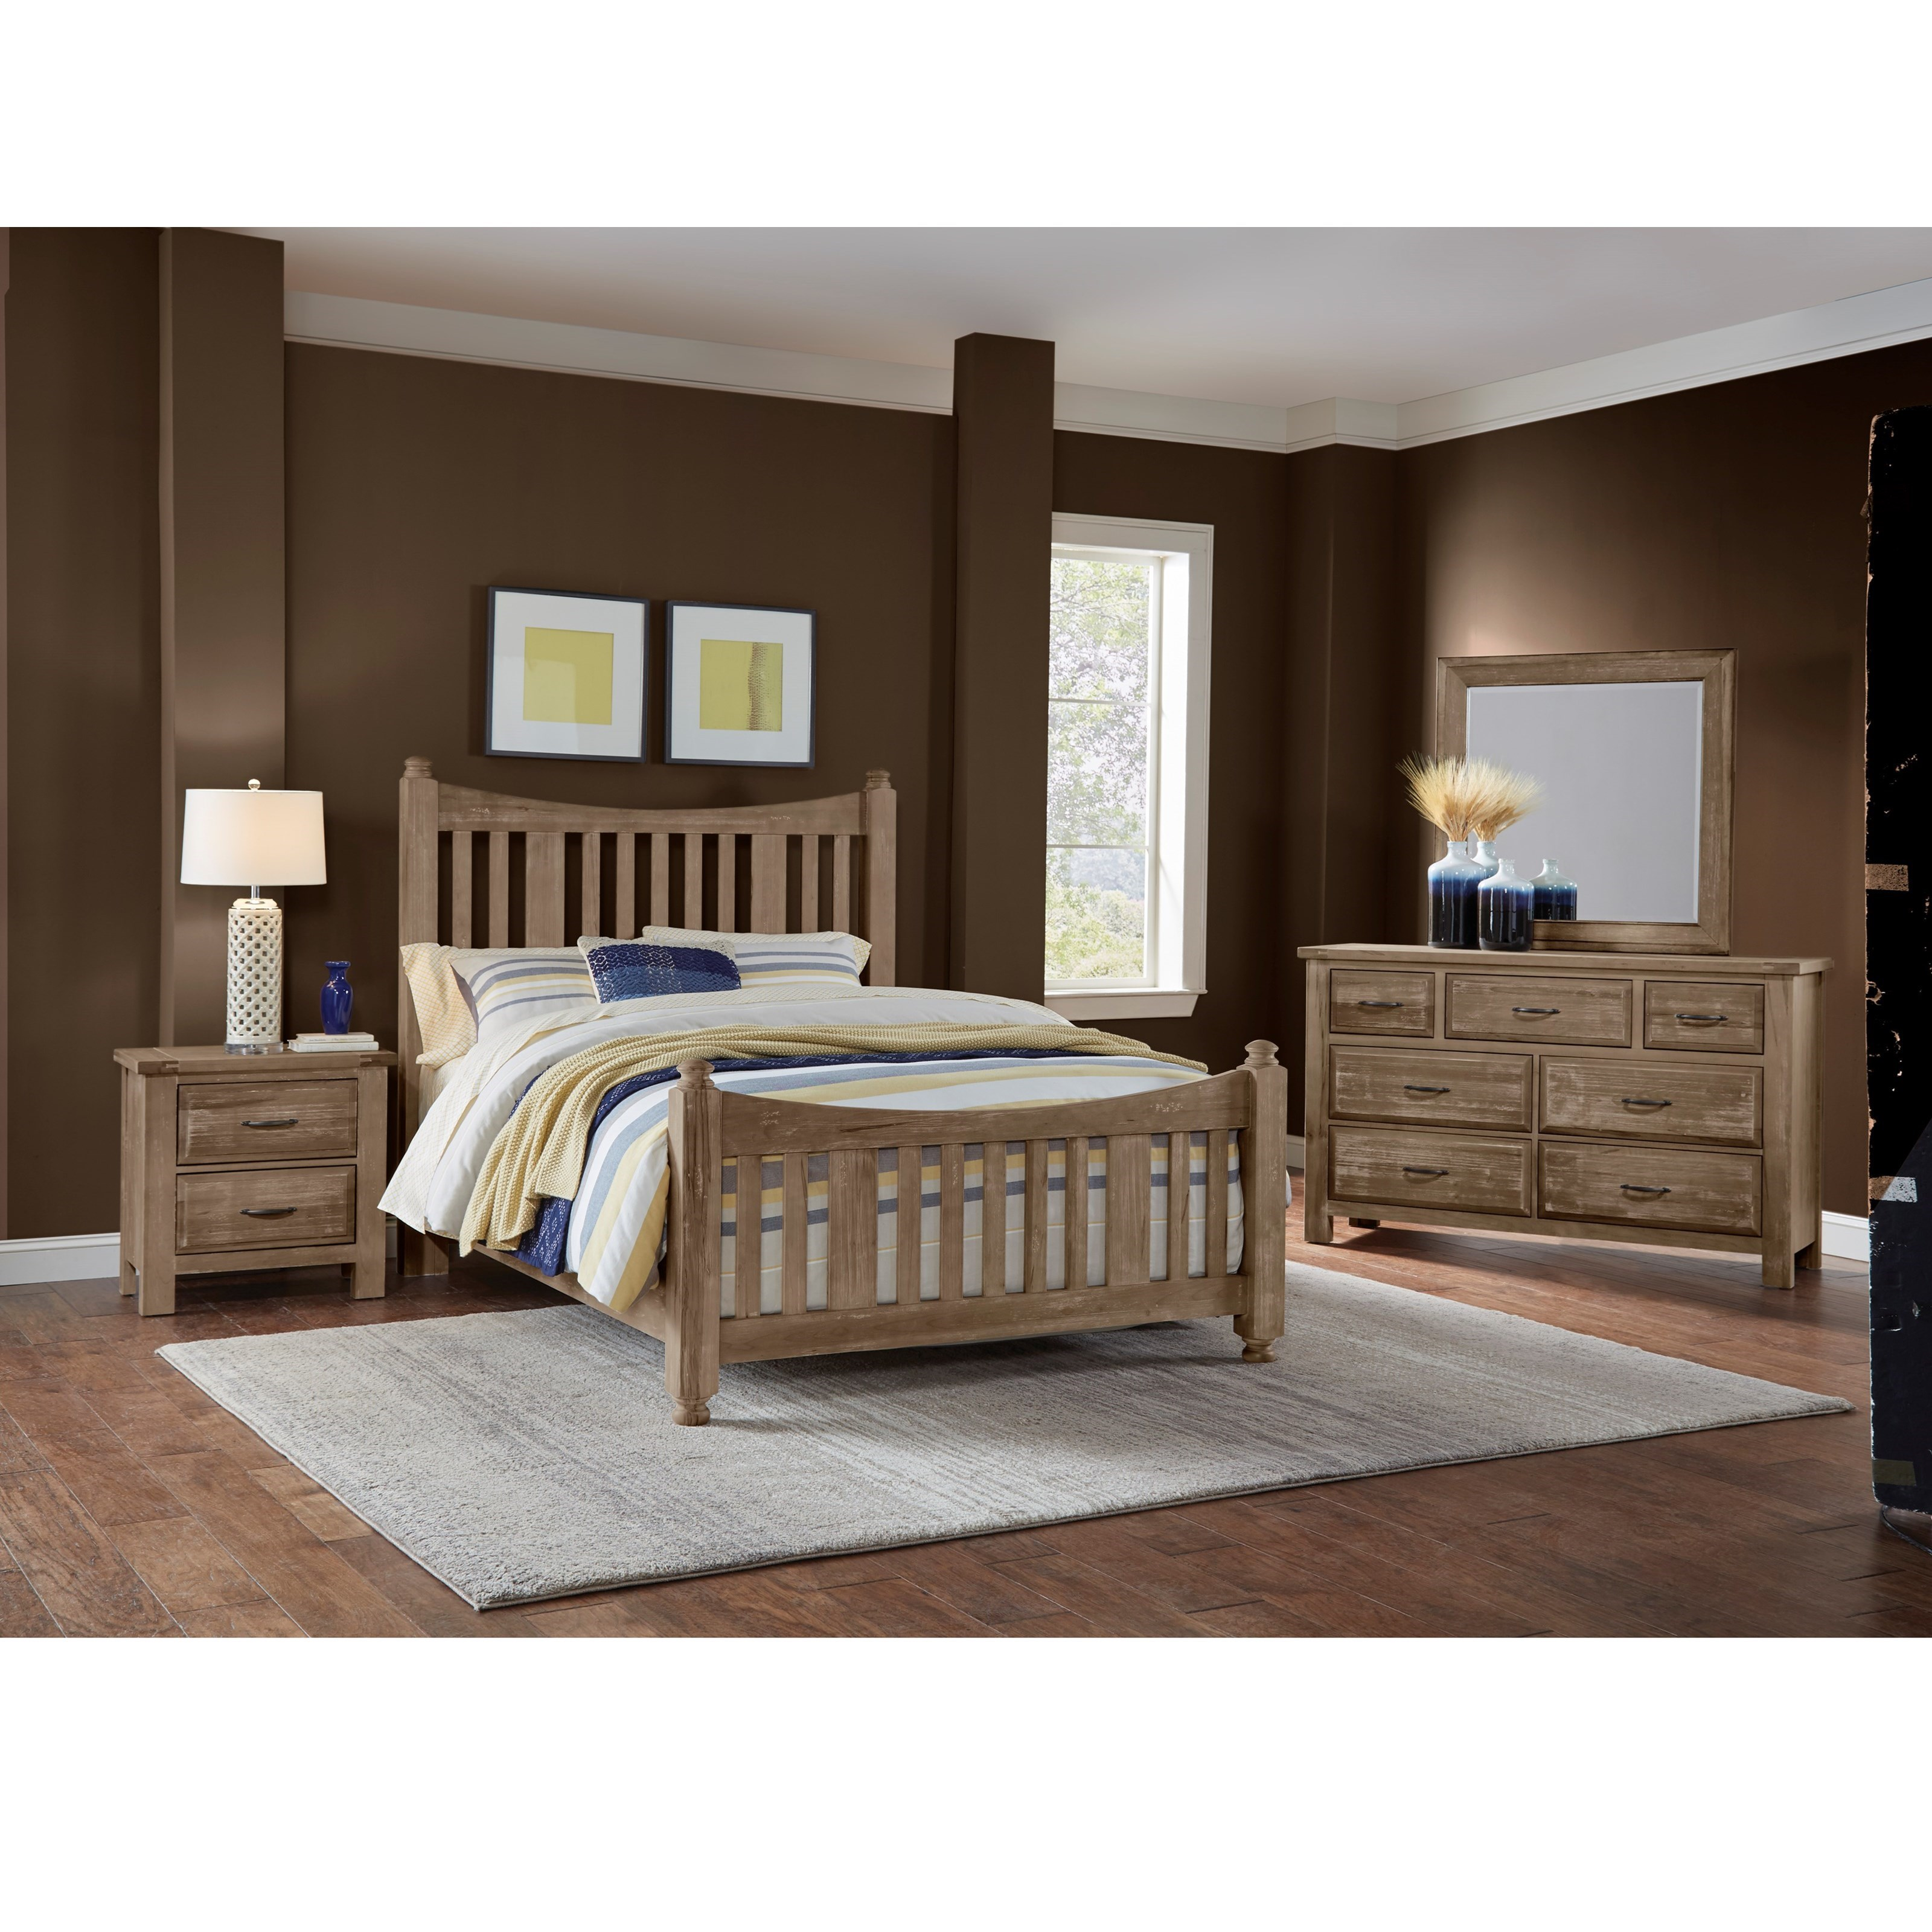 Artisan Amp Post Maple Road Solid Wood Queen Slat Poster Bed